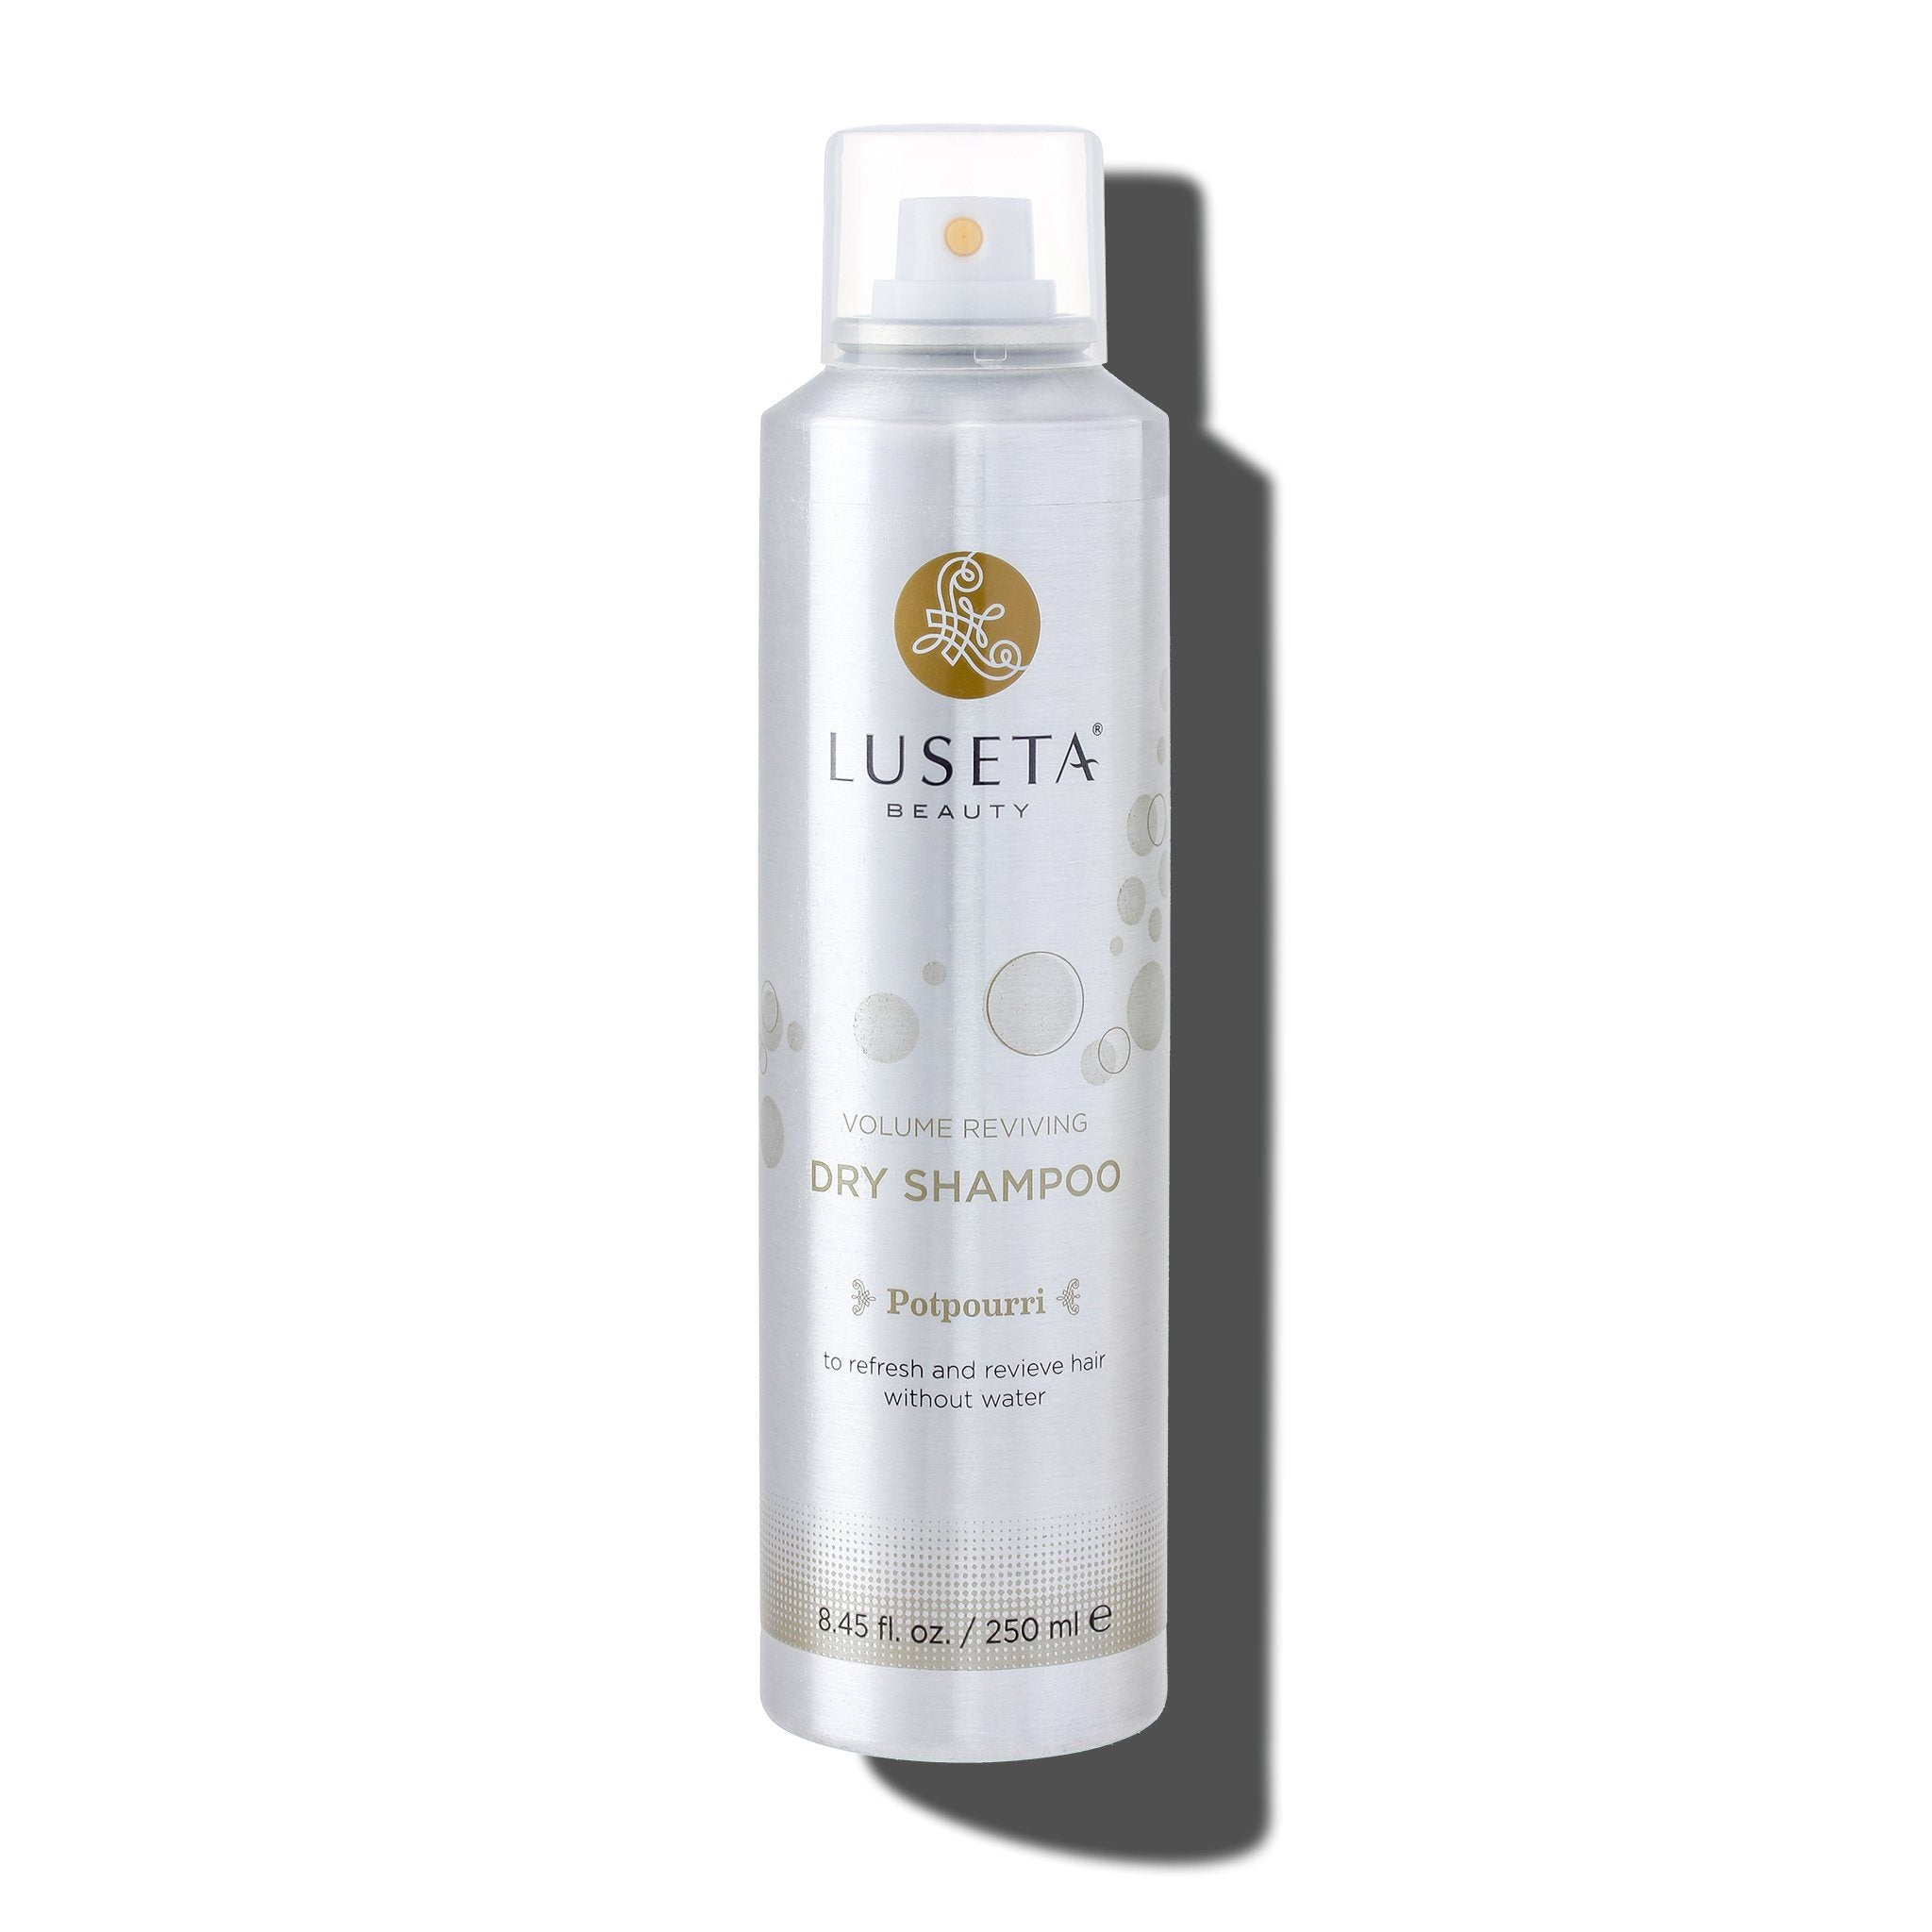 Volume Reviving Dry Shampoo - Luseta Beauty